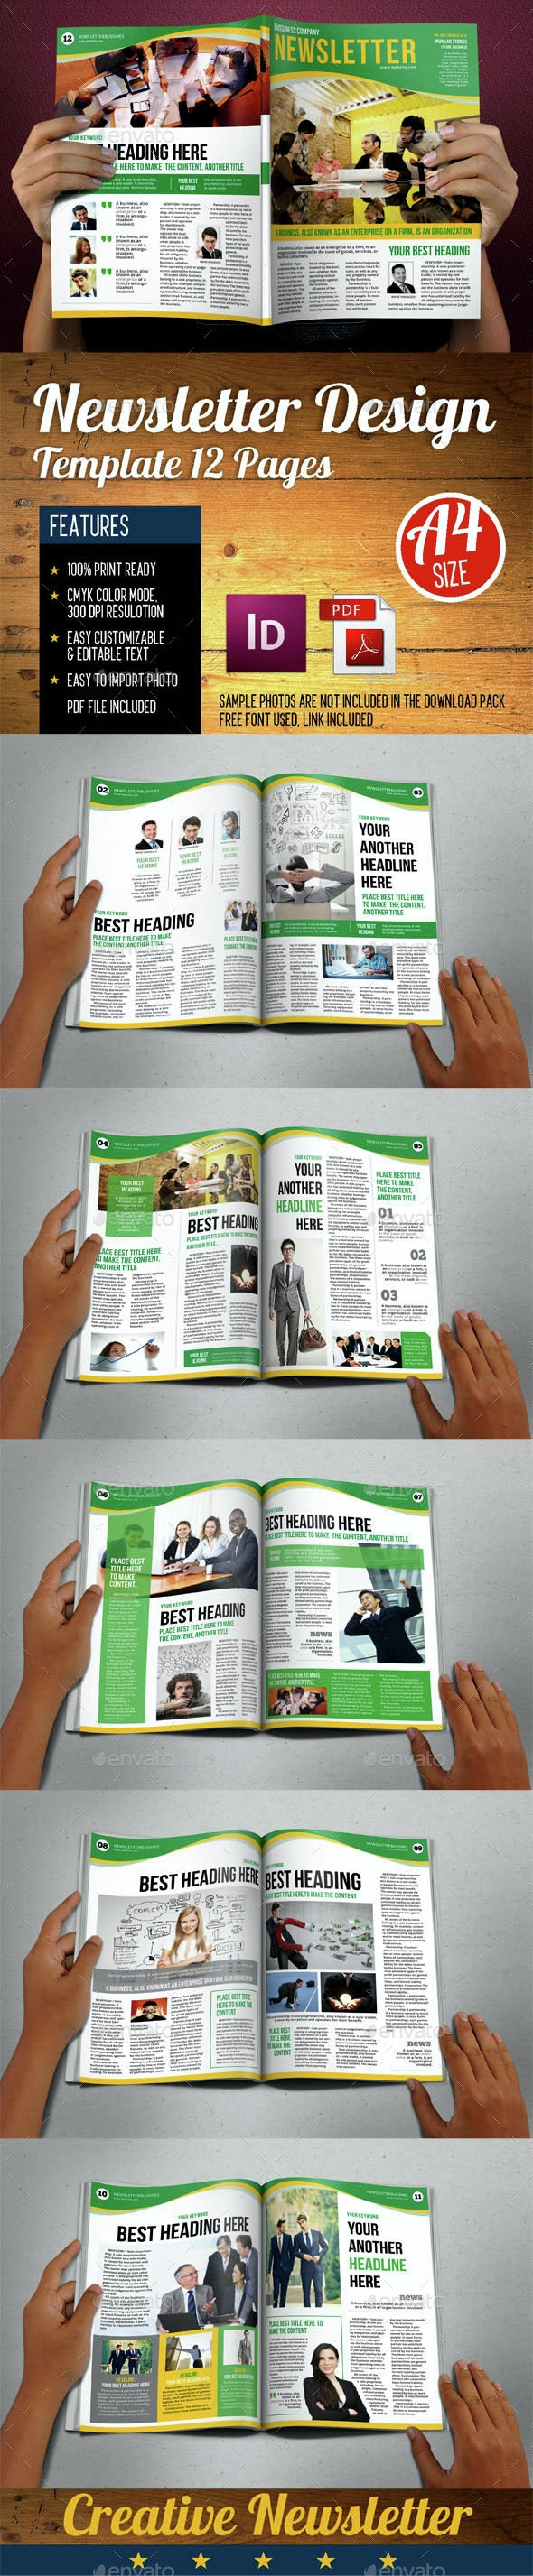 Newsletters Template 12 Pages Vol.4  - Newsletters Print Templates